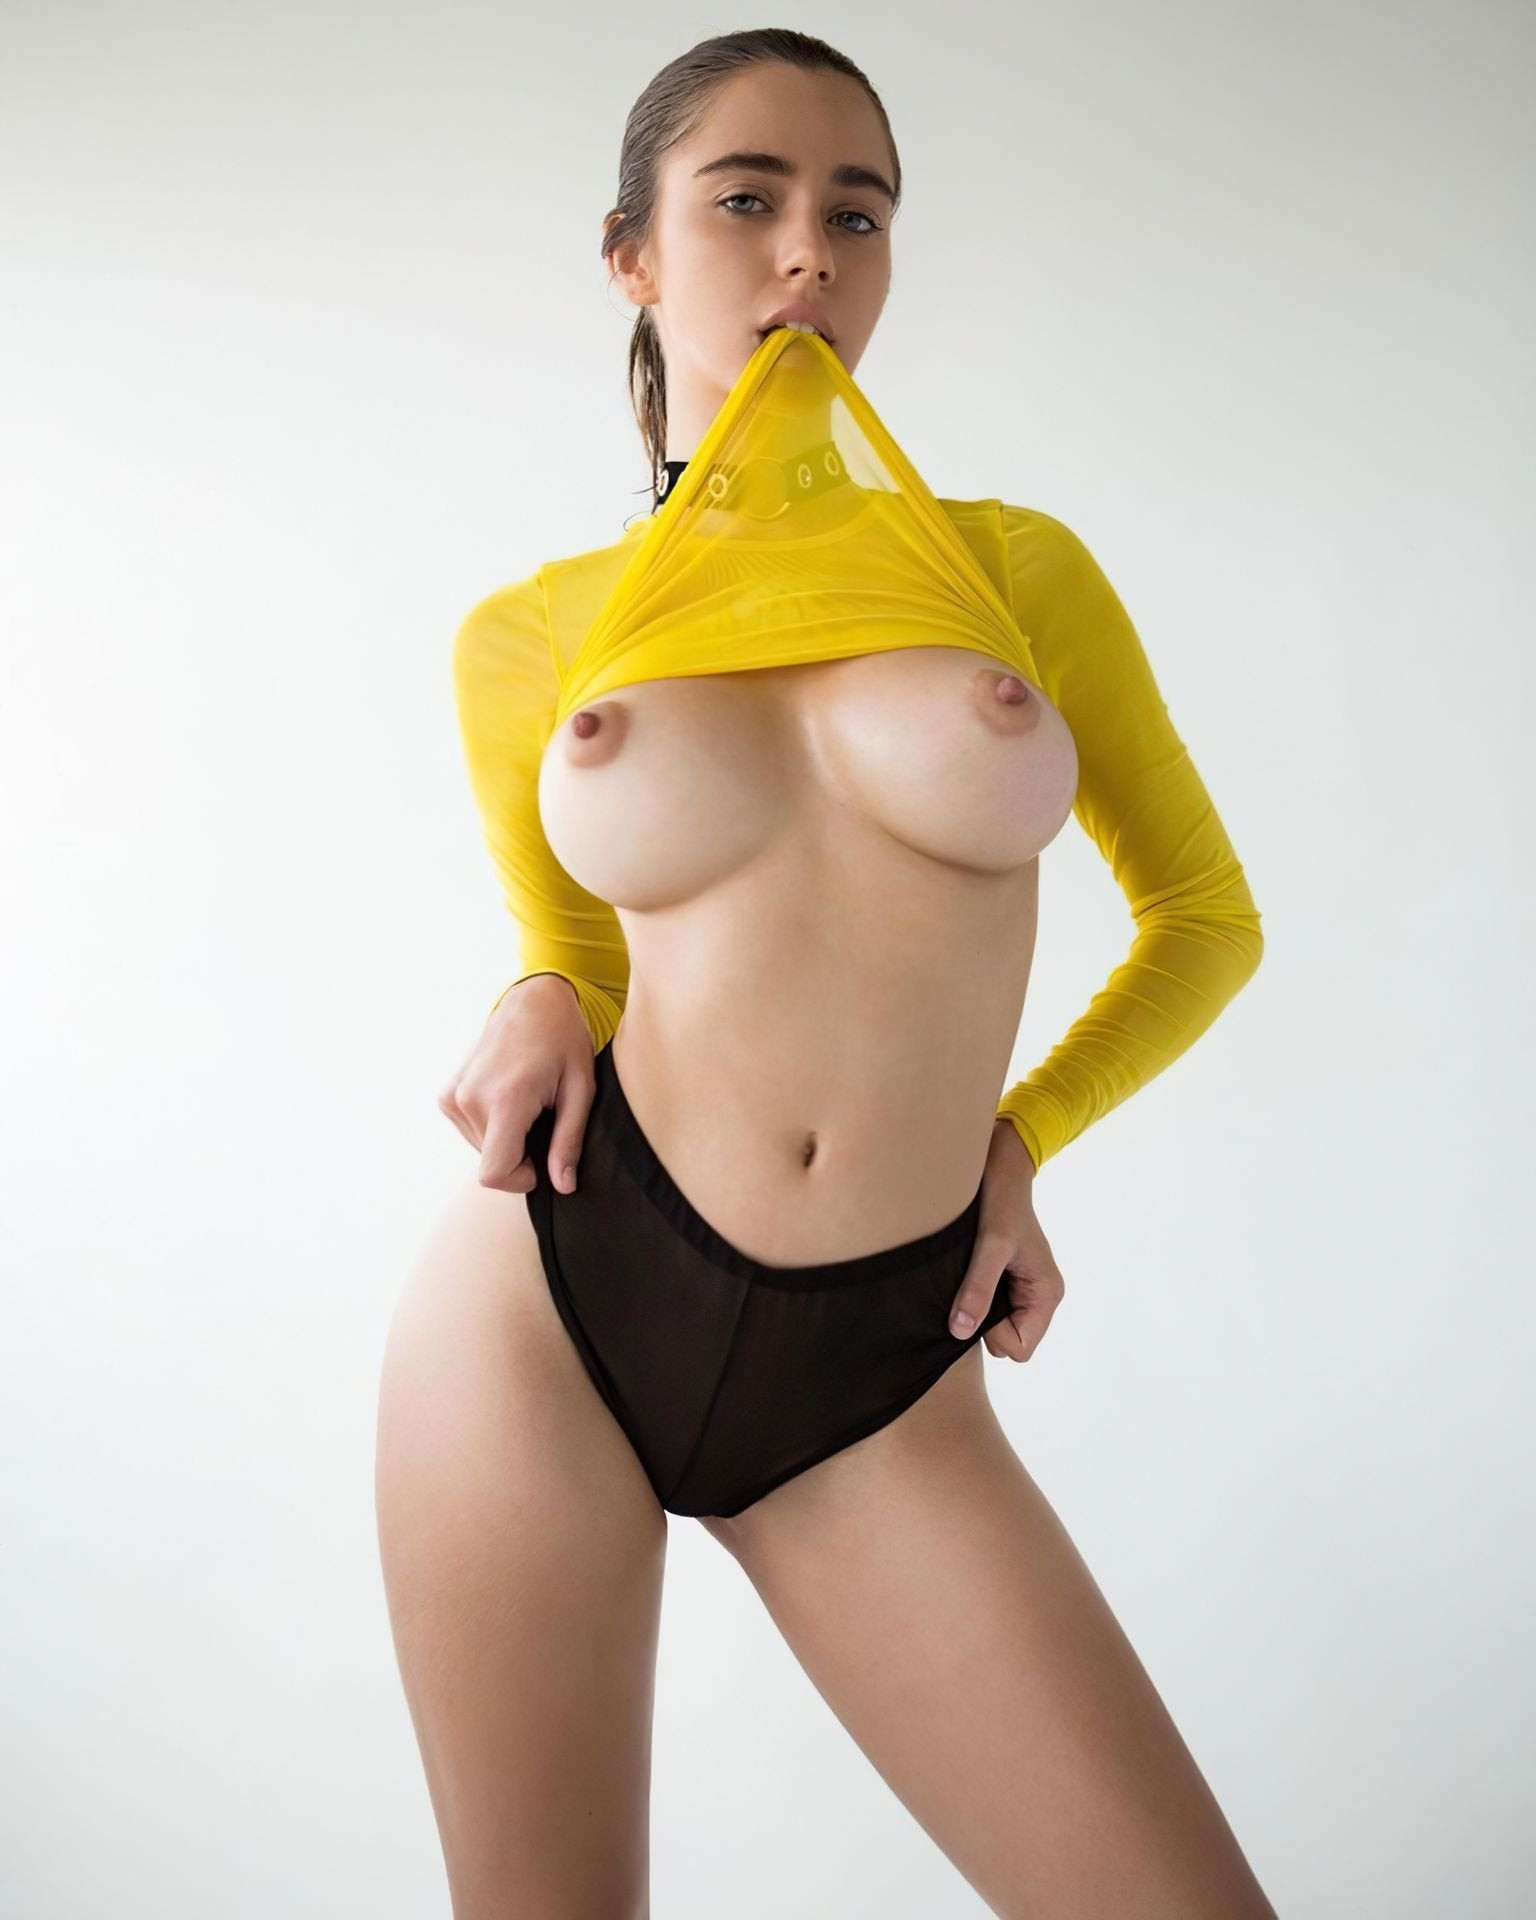 Danni levy ponytail and big boobs